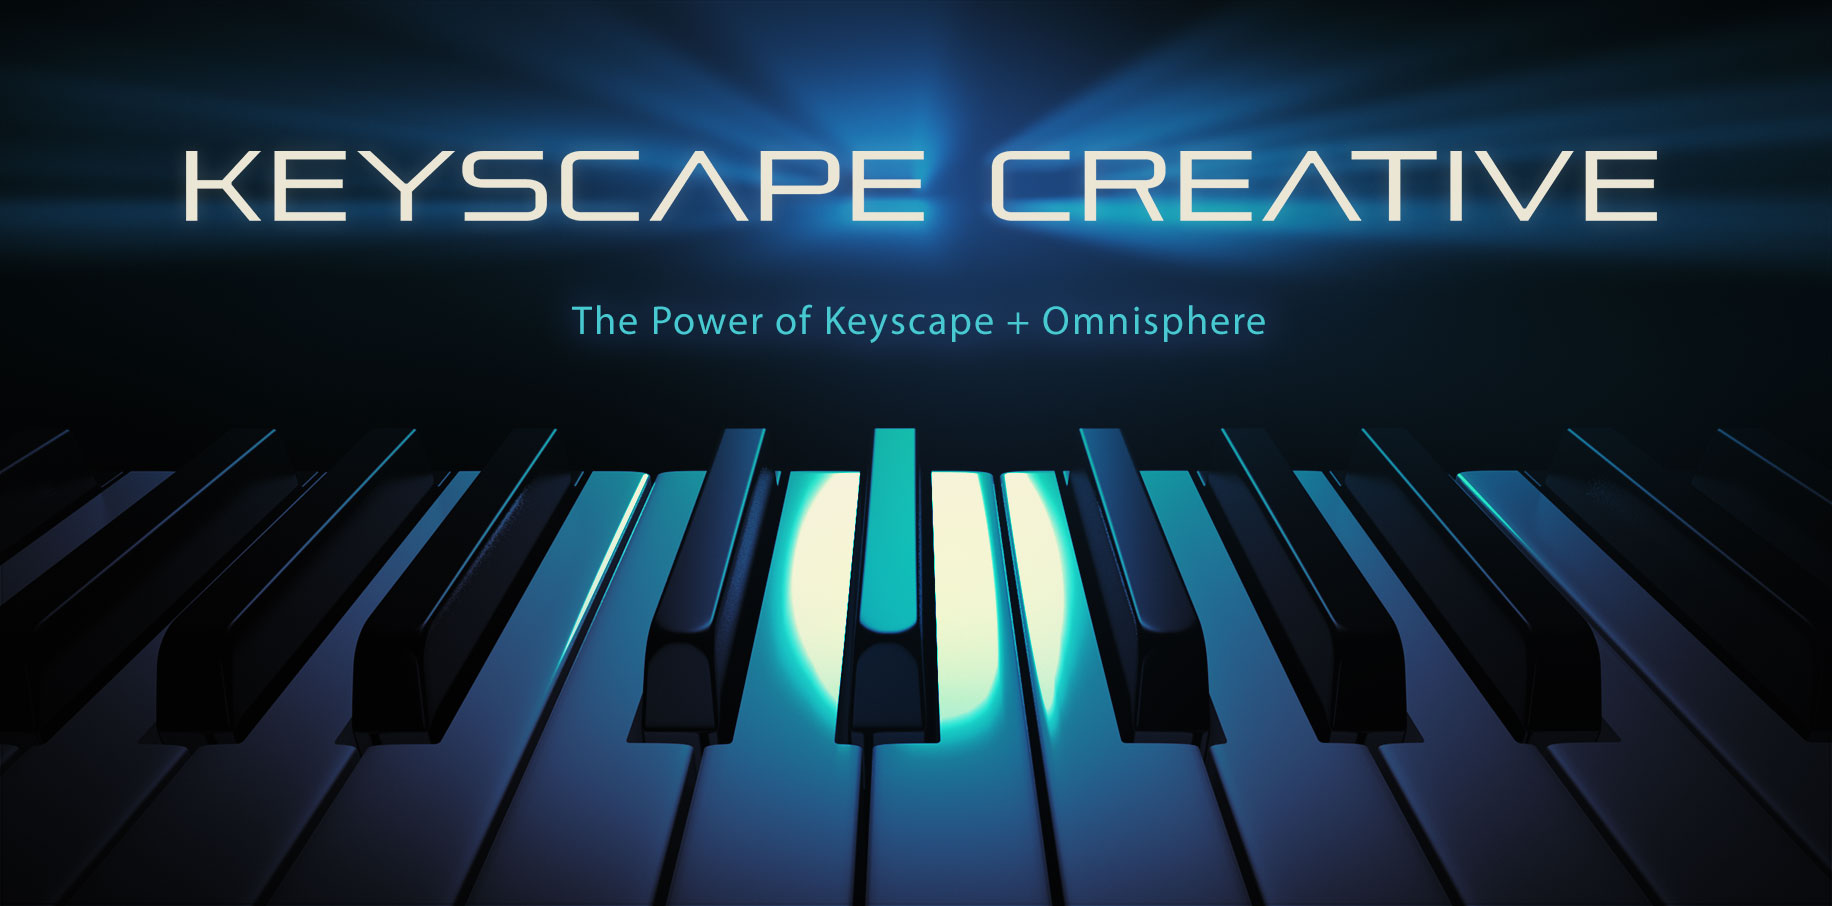 Keyscape Creative - 1,200 Free Patches